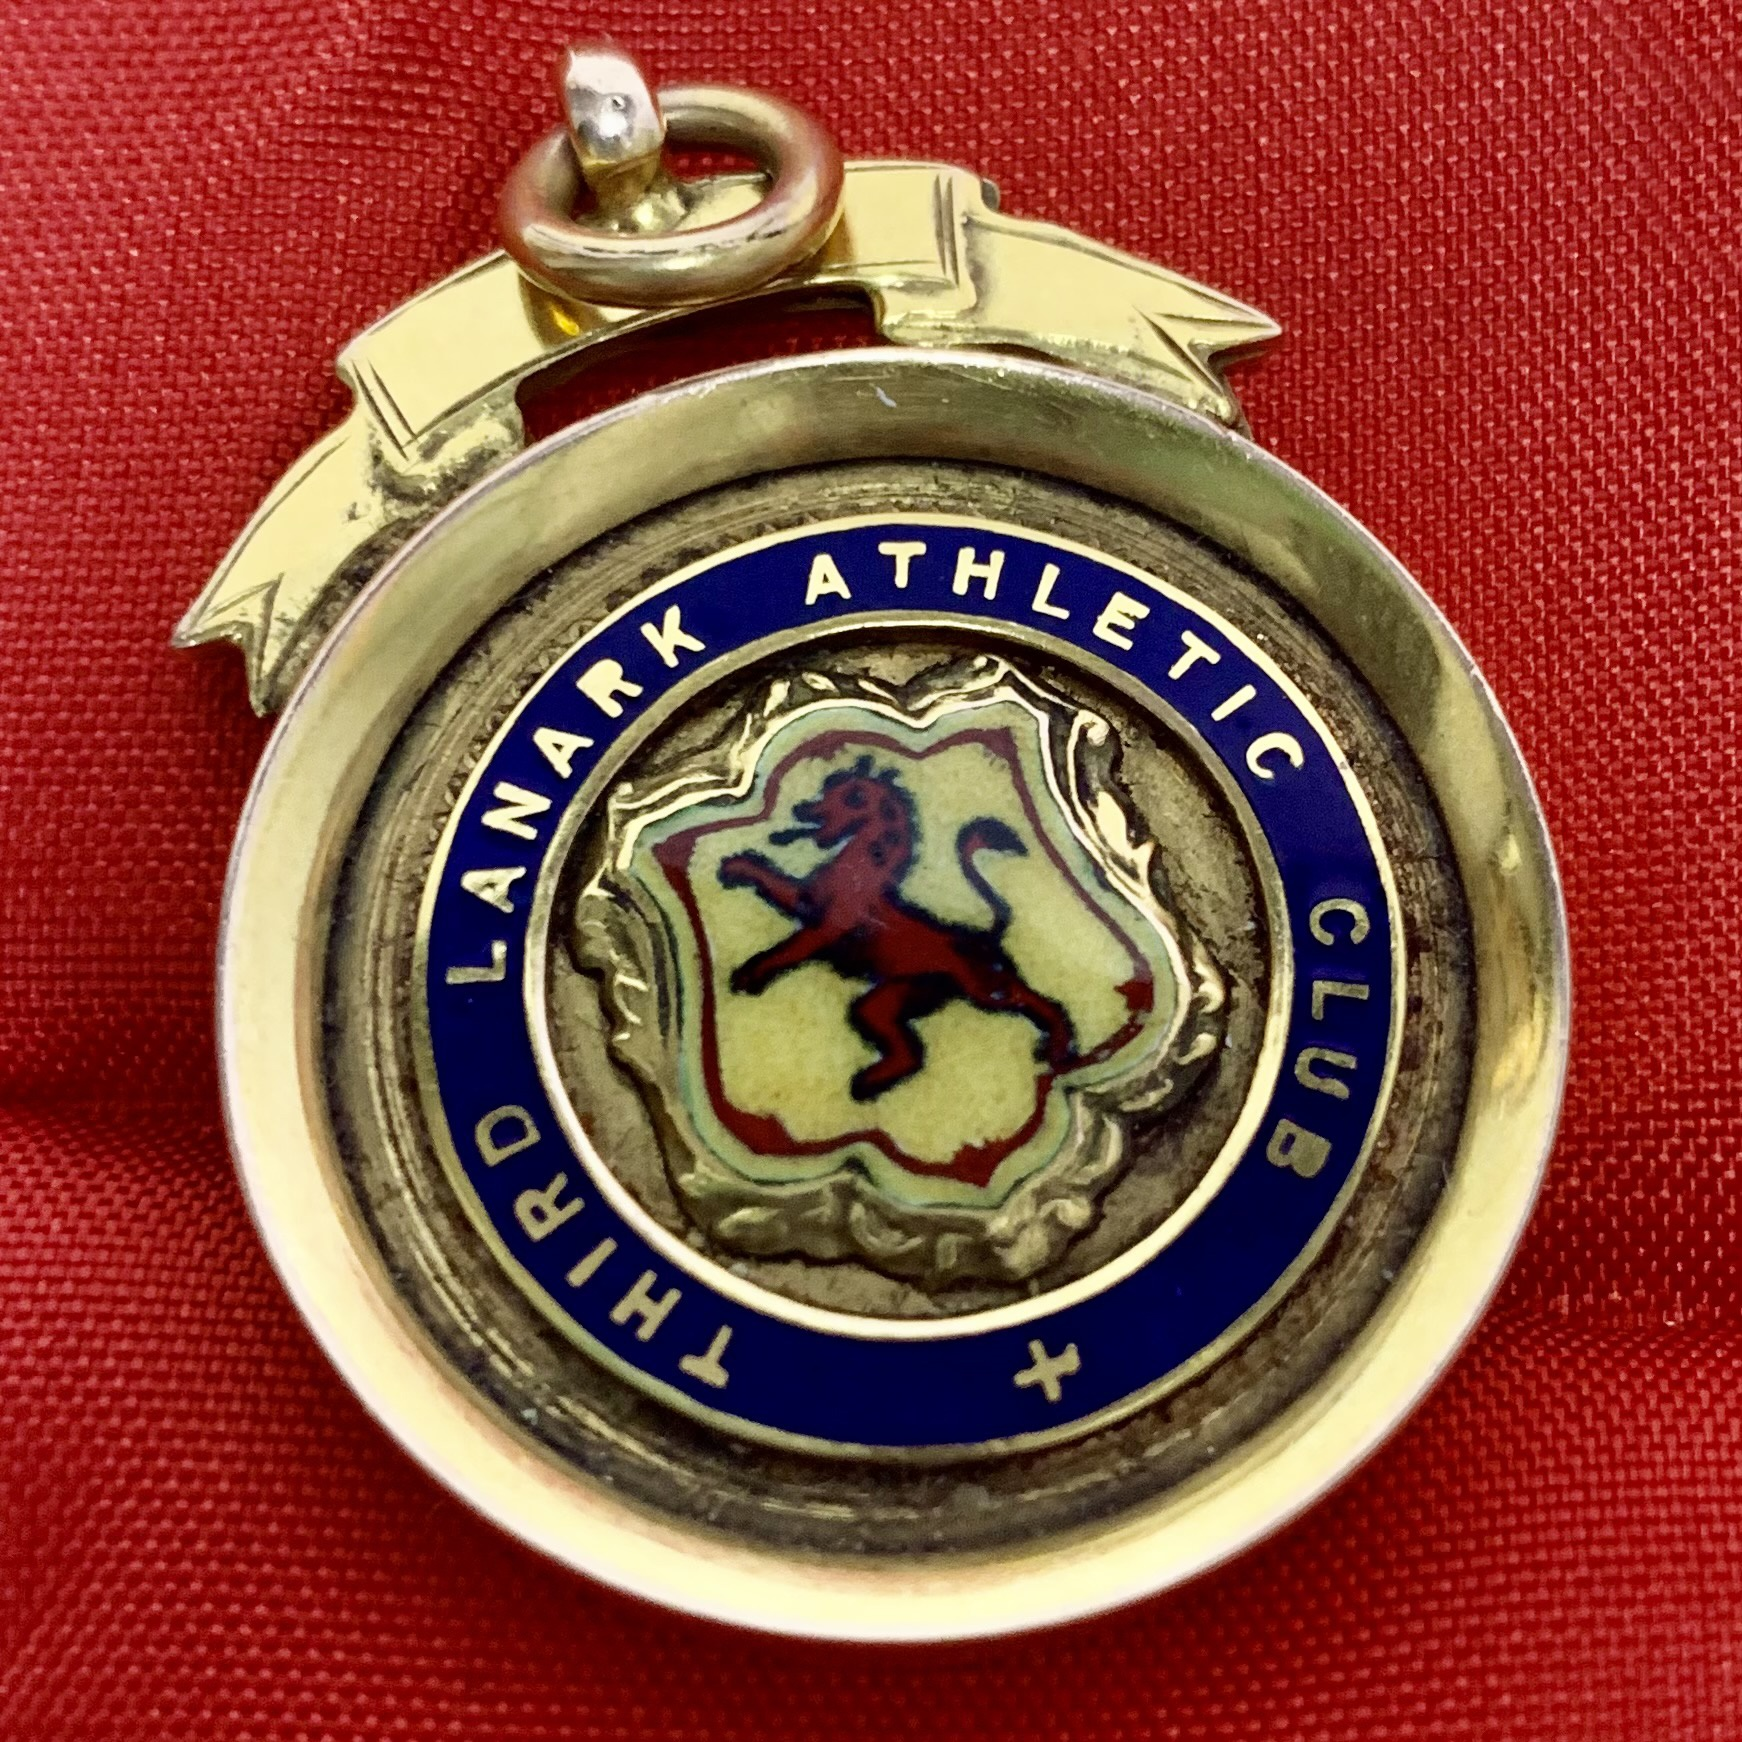 Rare Third Lanark Medal to come to auction